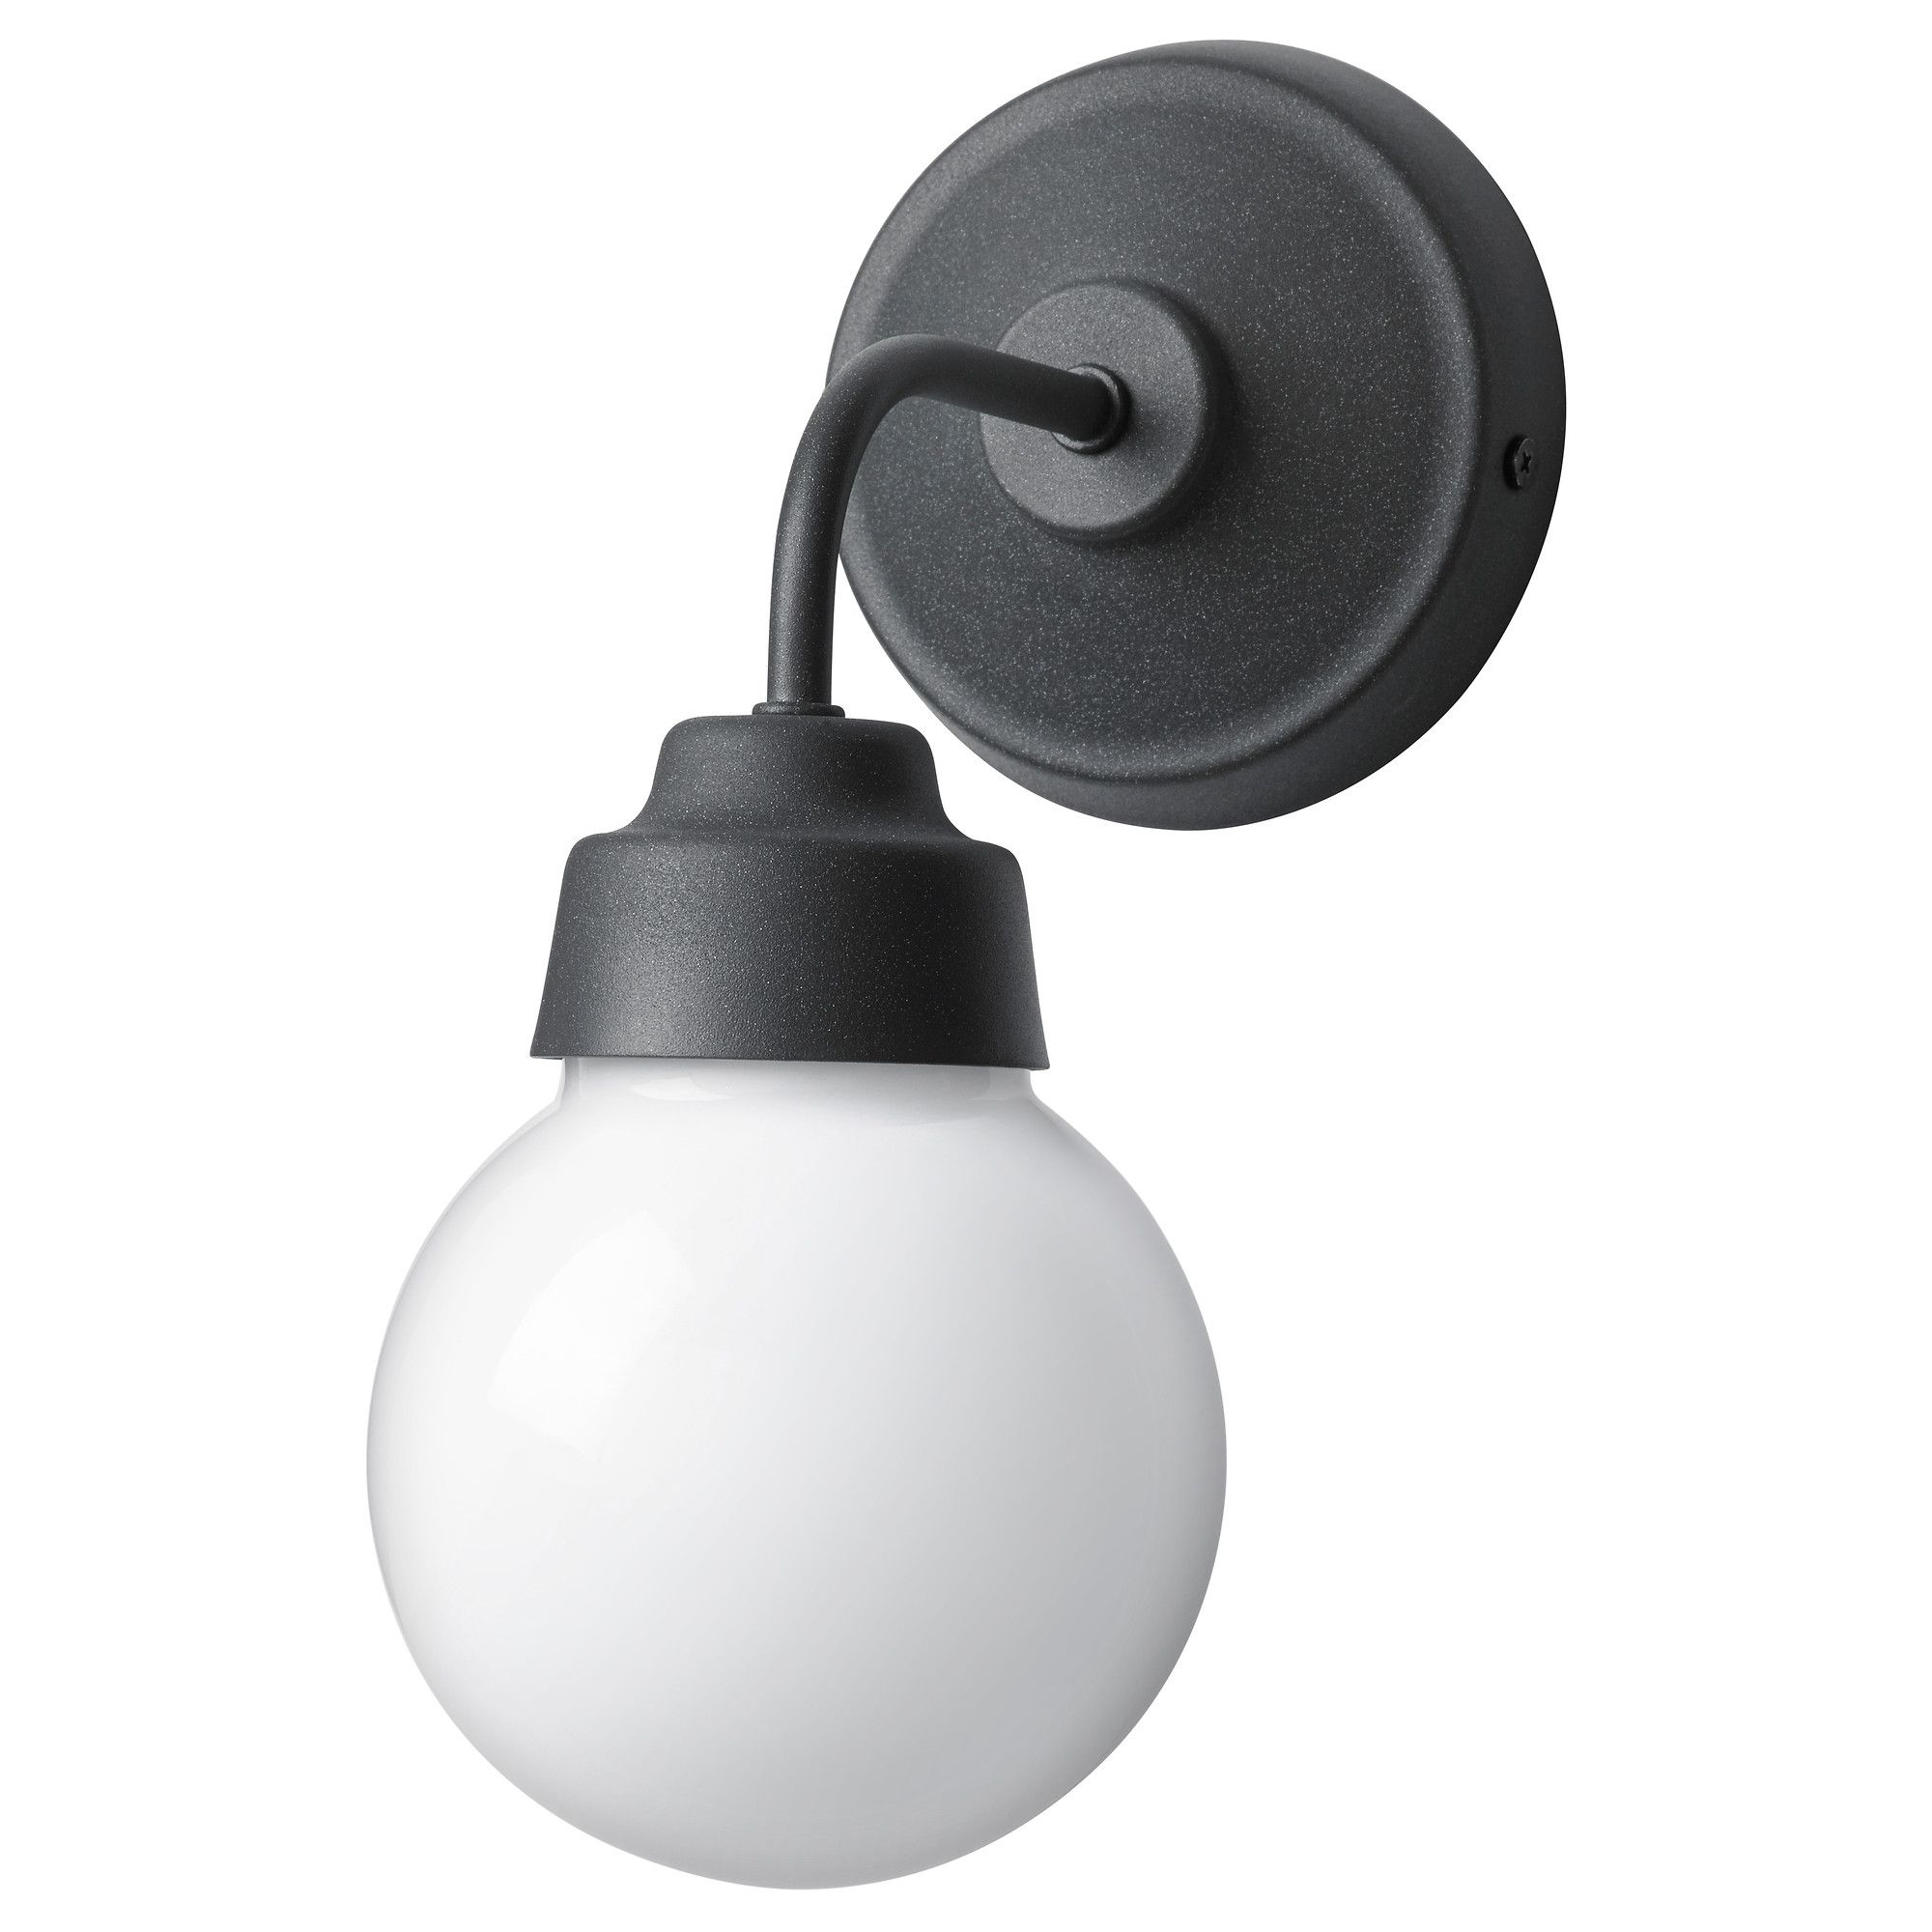 Ikea Wall Lighting VITEM–LLA Wall Lamp IKEA Ikea Lighting E Bgbc